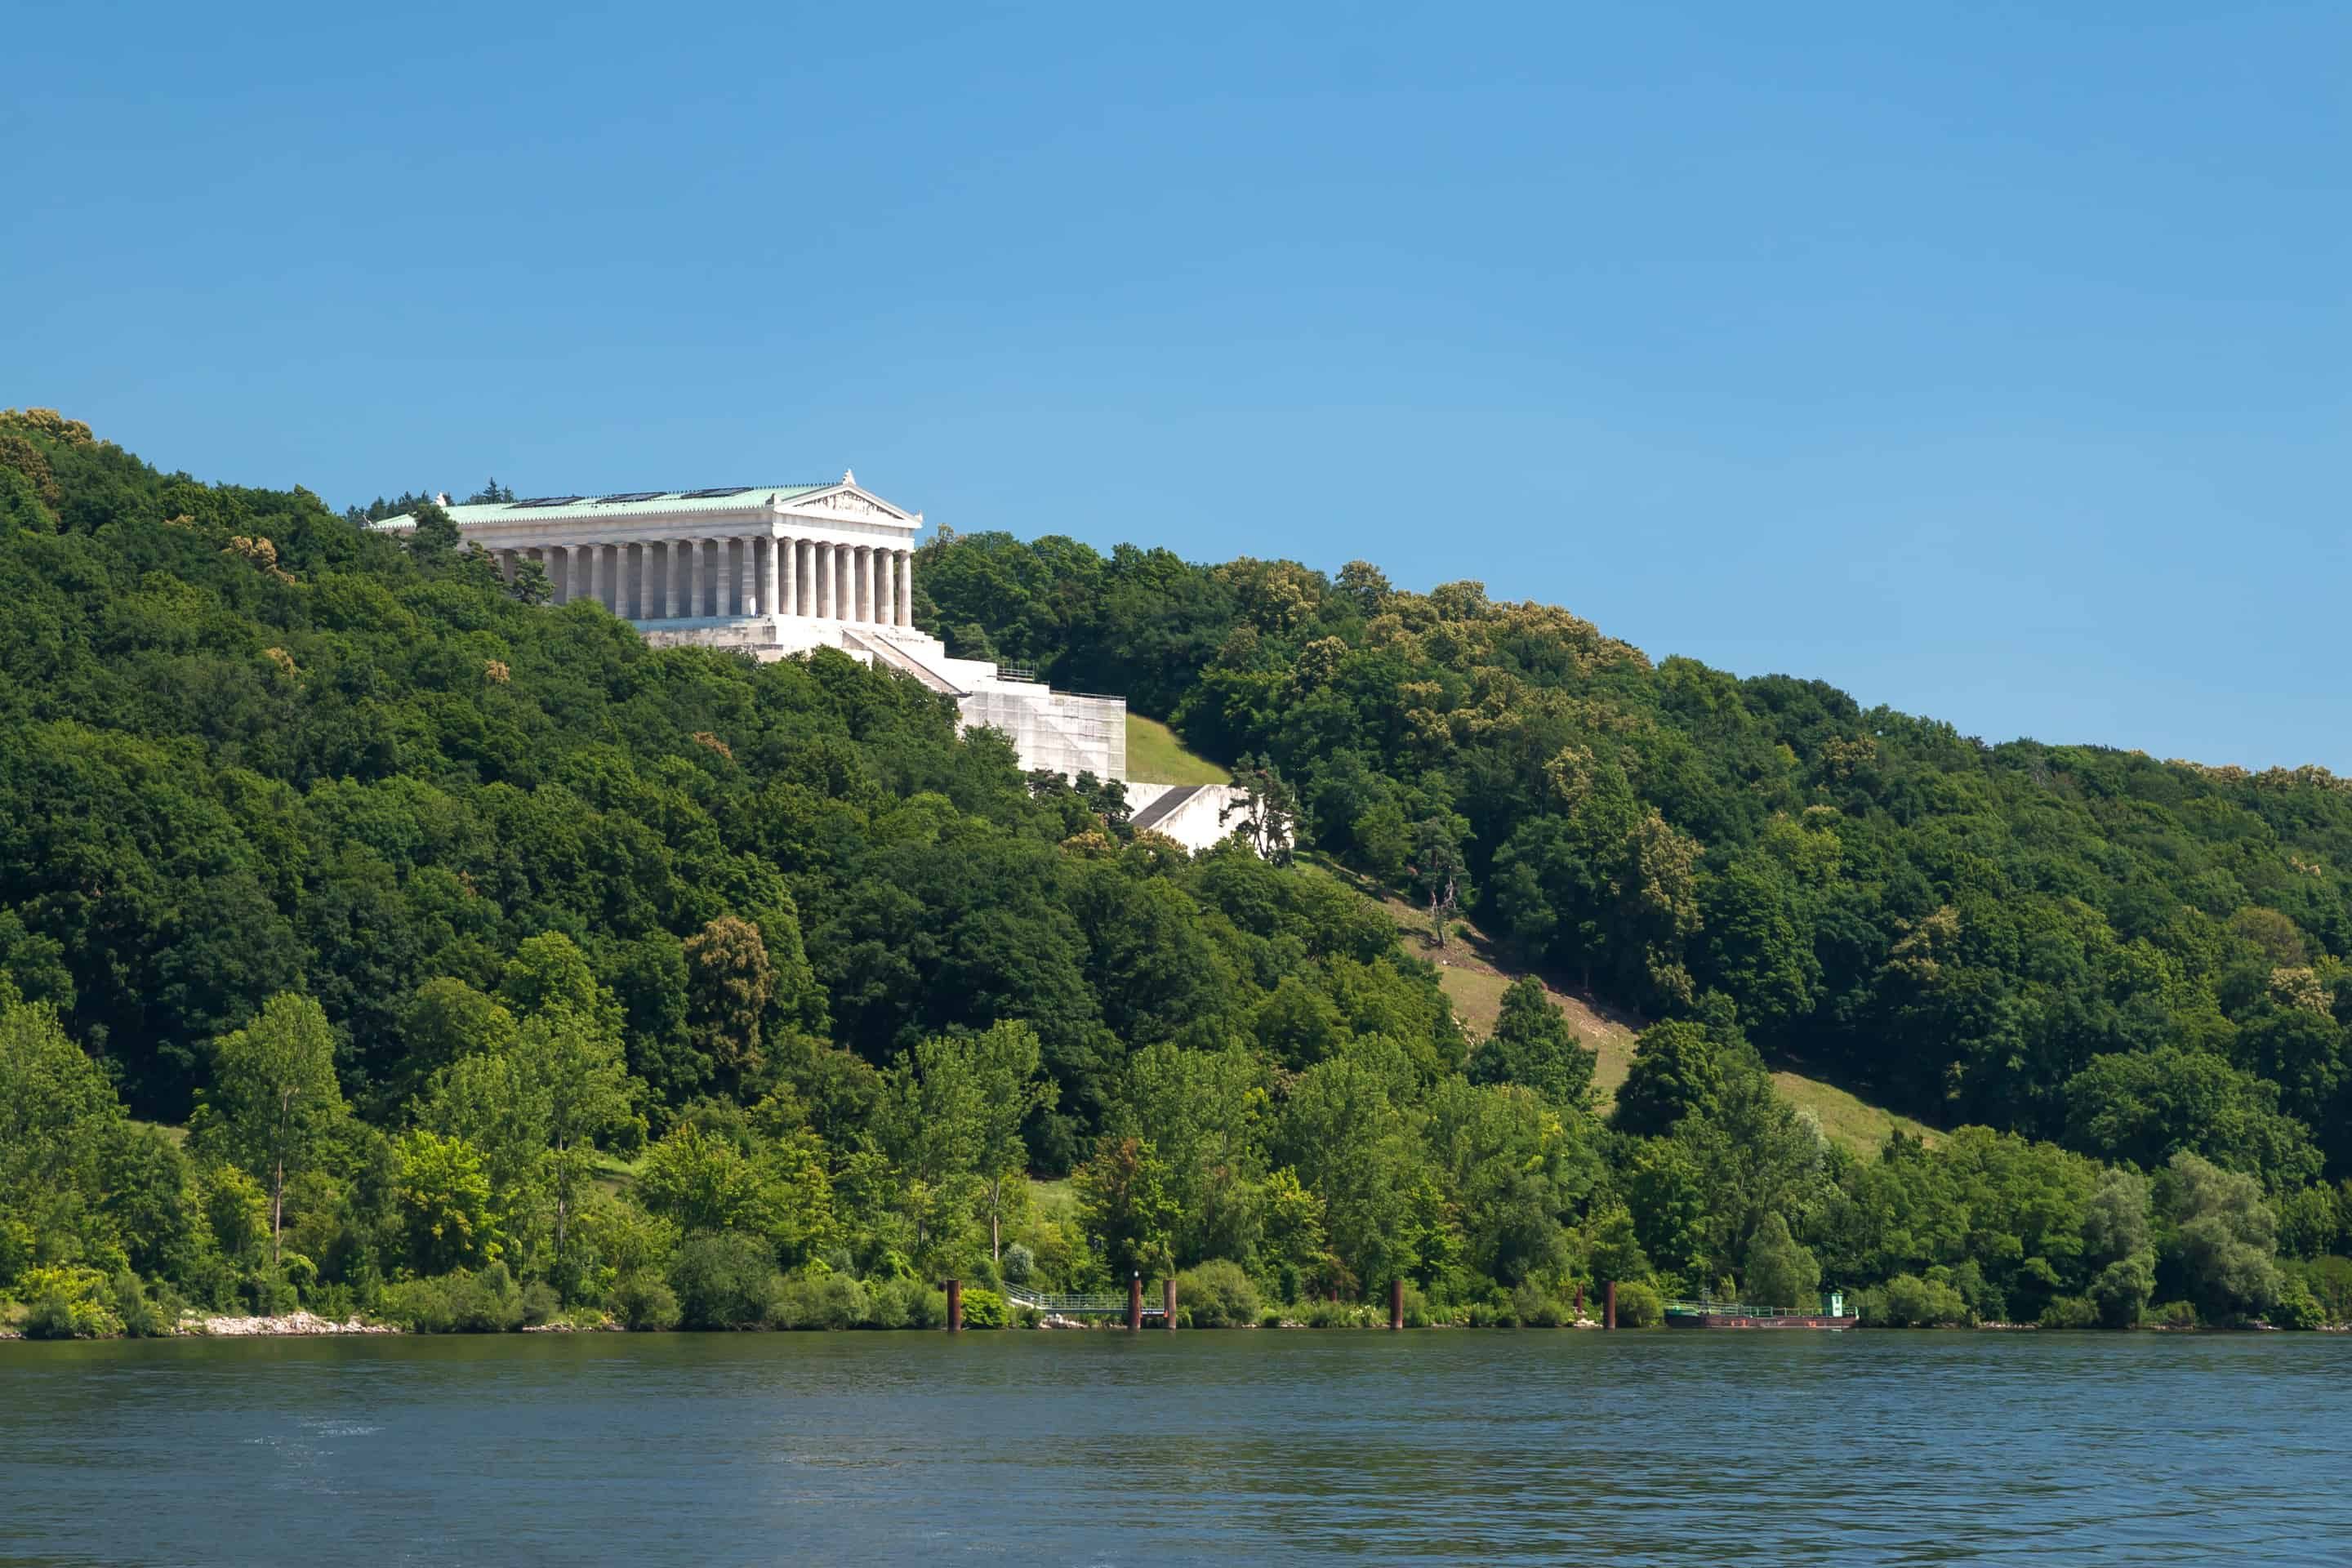 Walhalla Memorial at the river, near the city of Regensburg in Bavaria, Germany